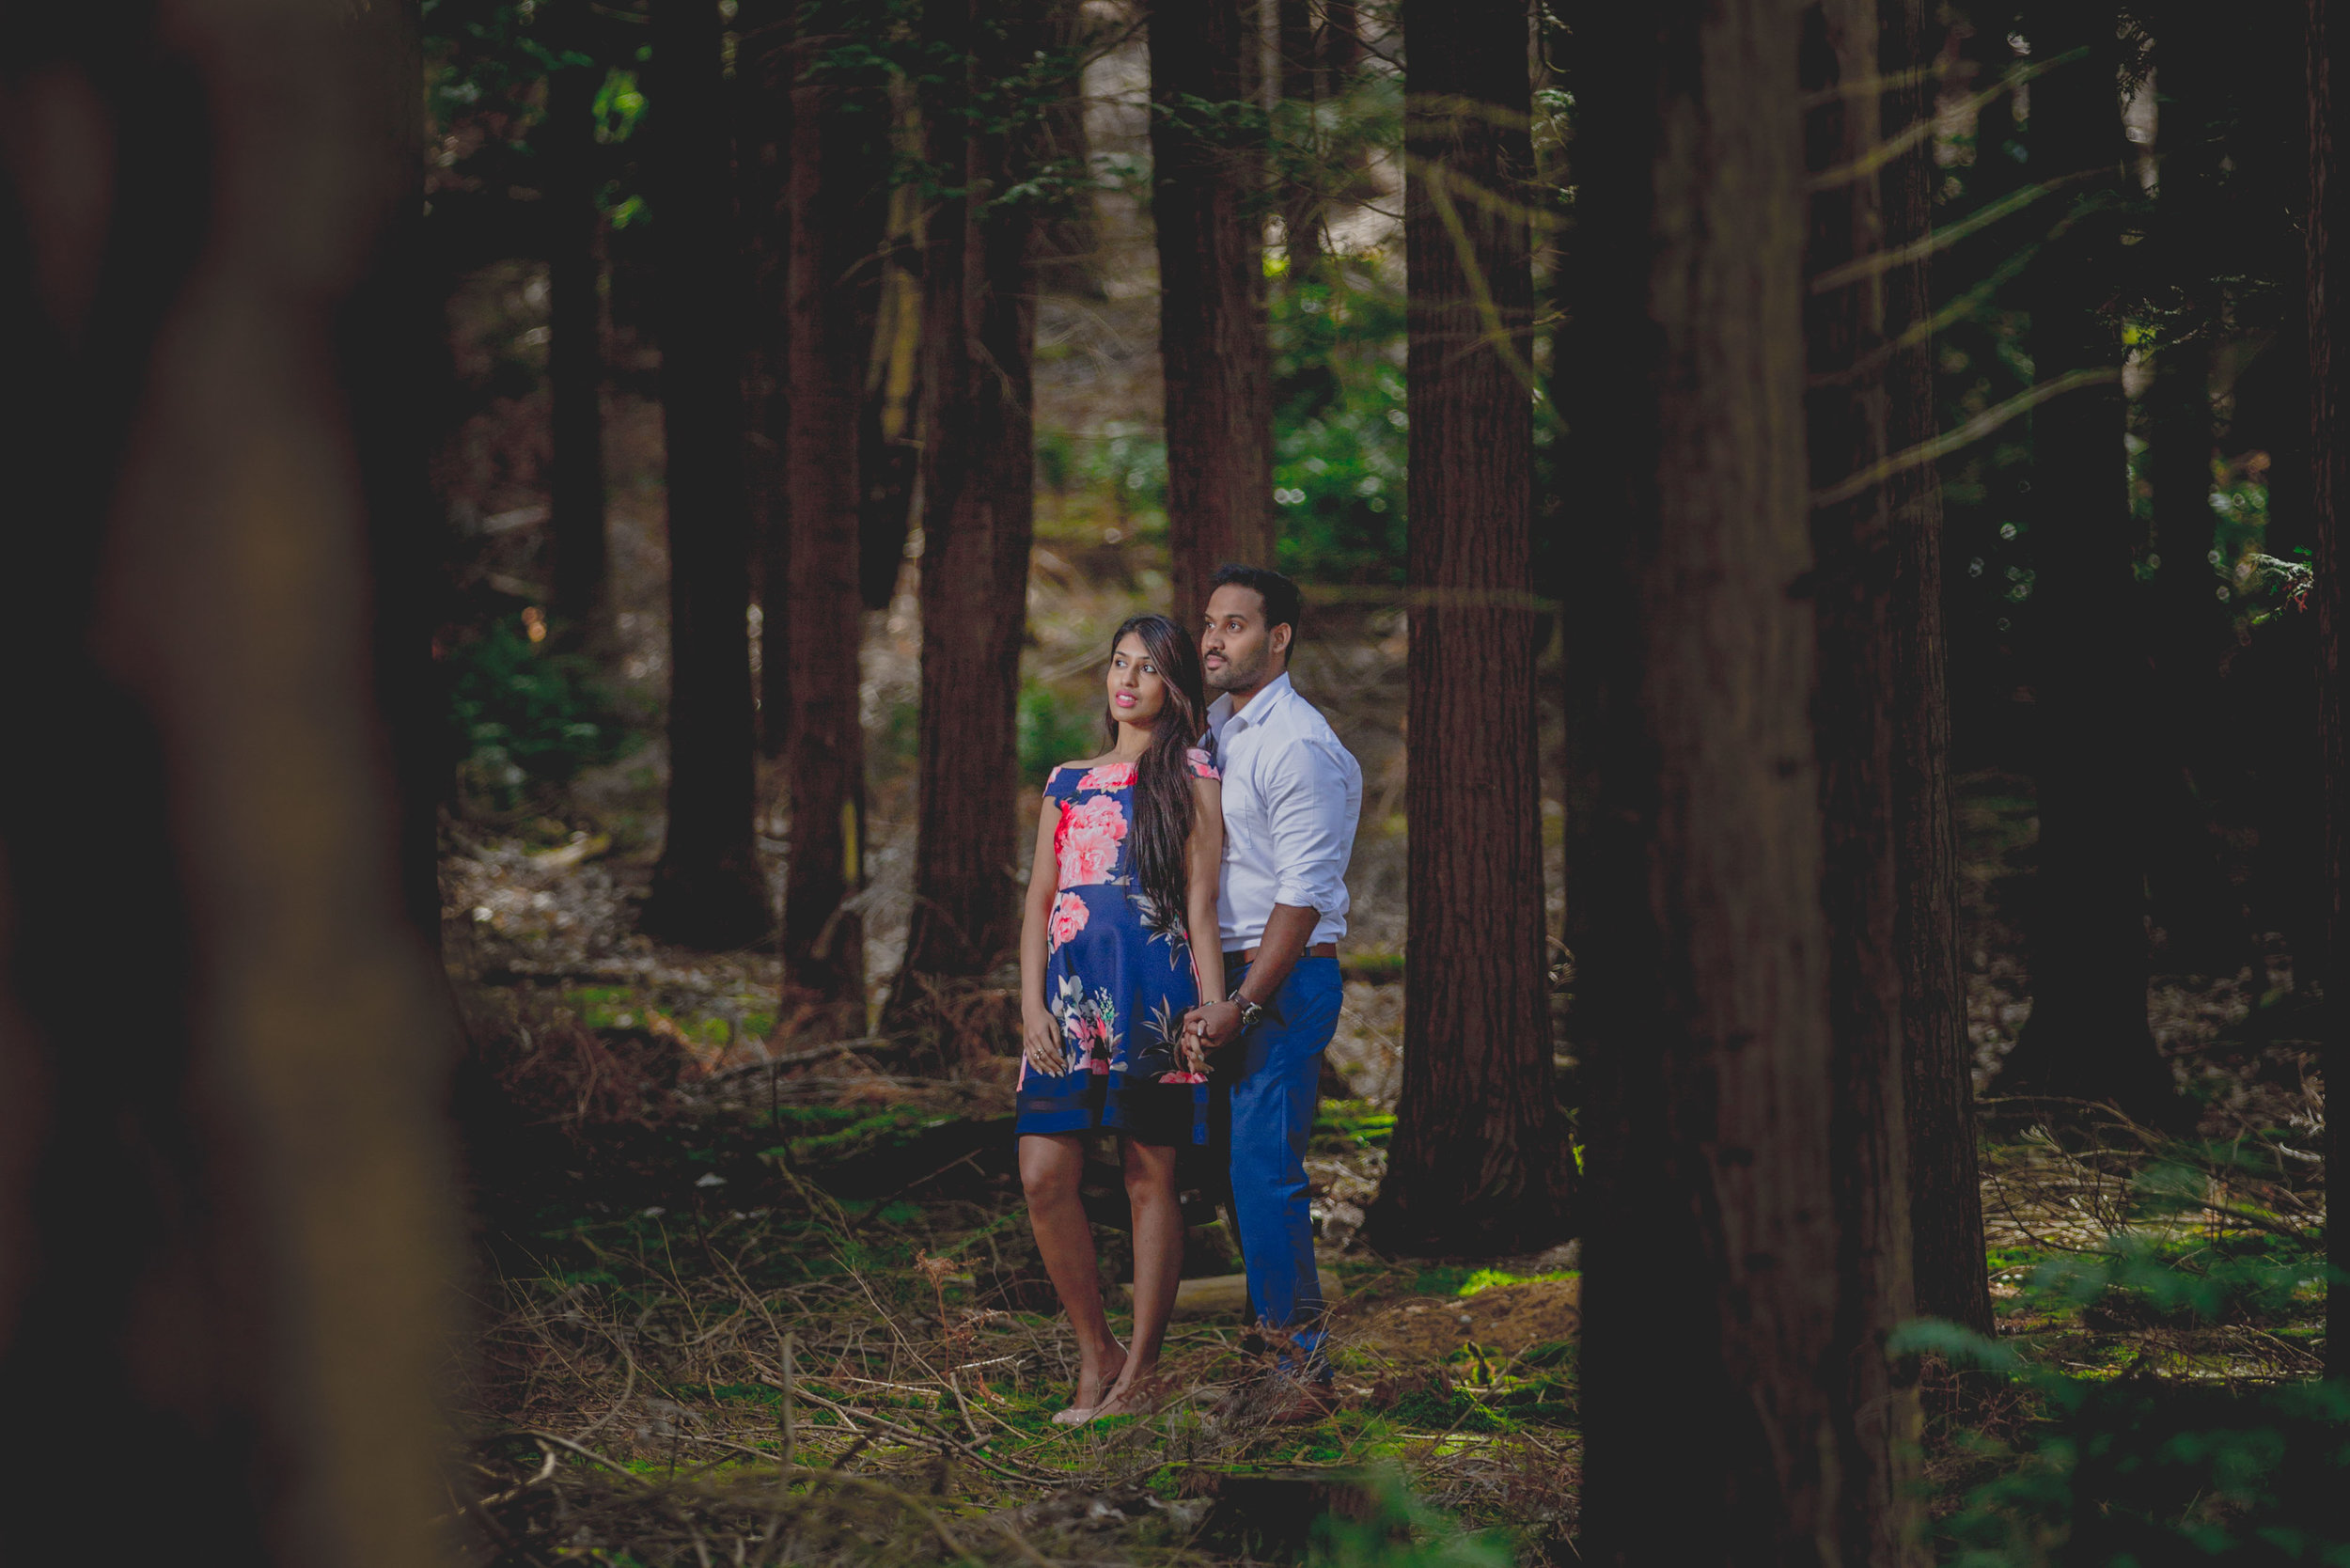 Virginia-waters-windsor-pre-wedding-engagement-shoot-female-asian-wedding-photographer-natalia-smith-photography-4.jpg